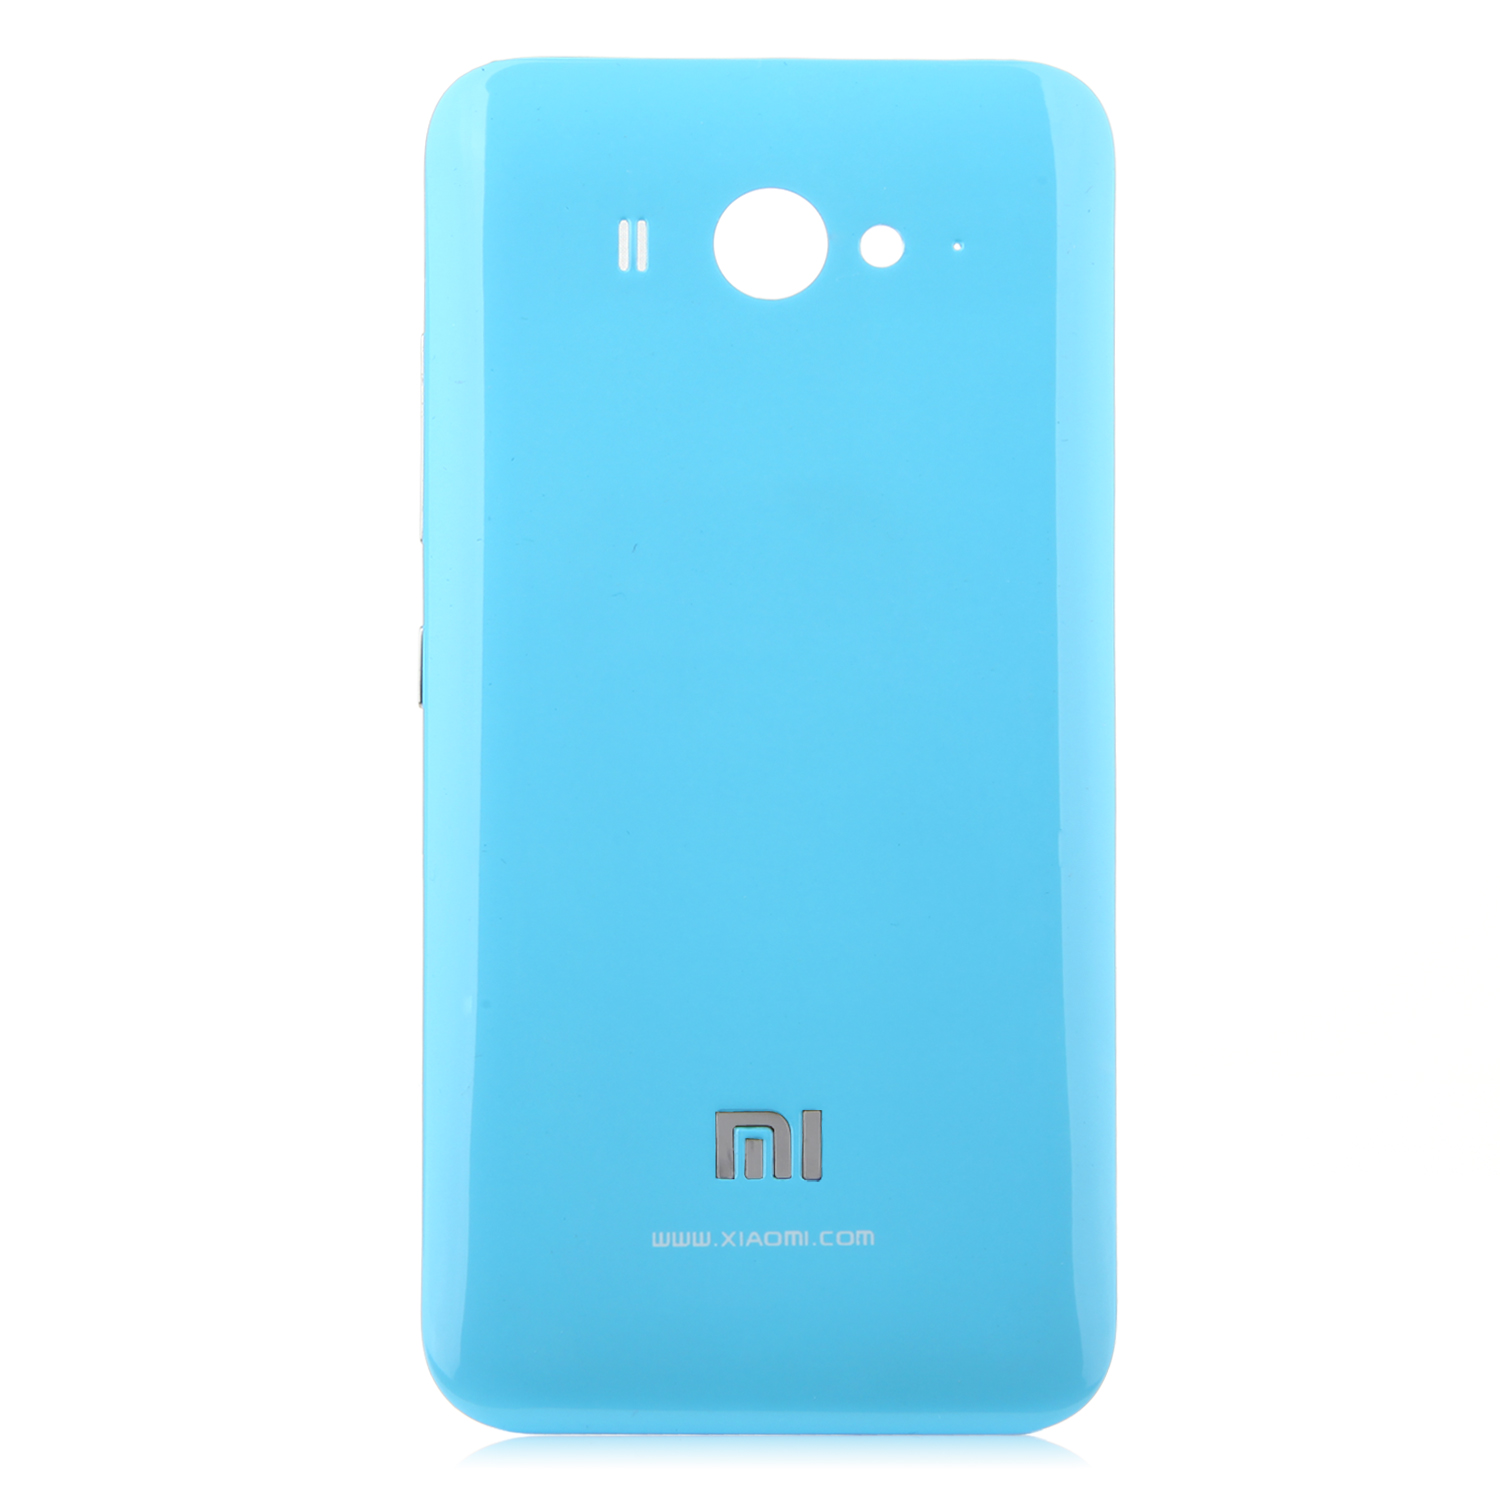 Replacement Battery Cover Back Case for XIAOMI 2S Smartphone Blue